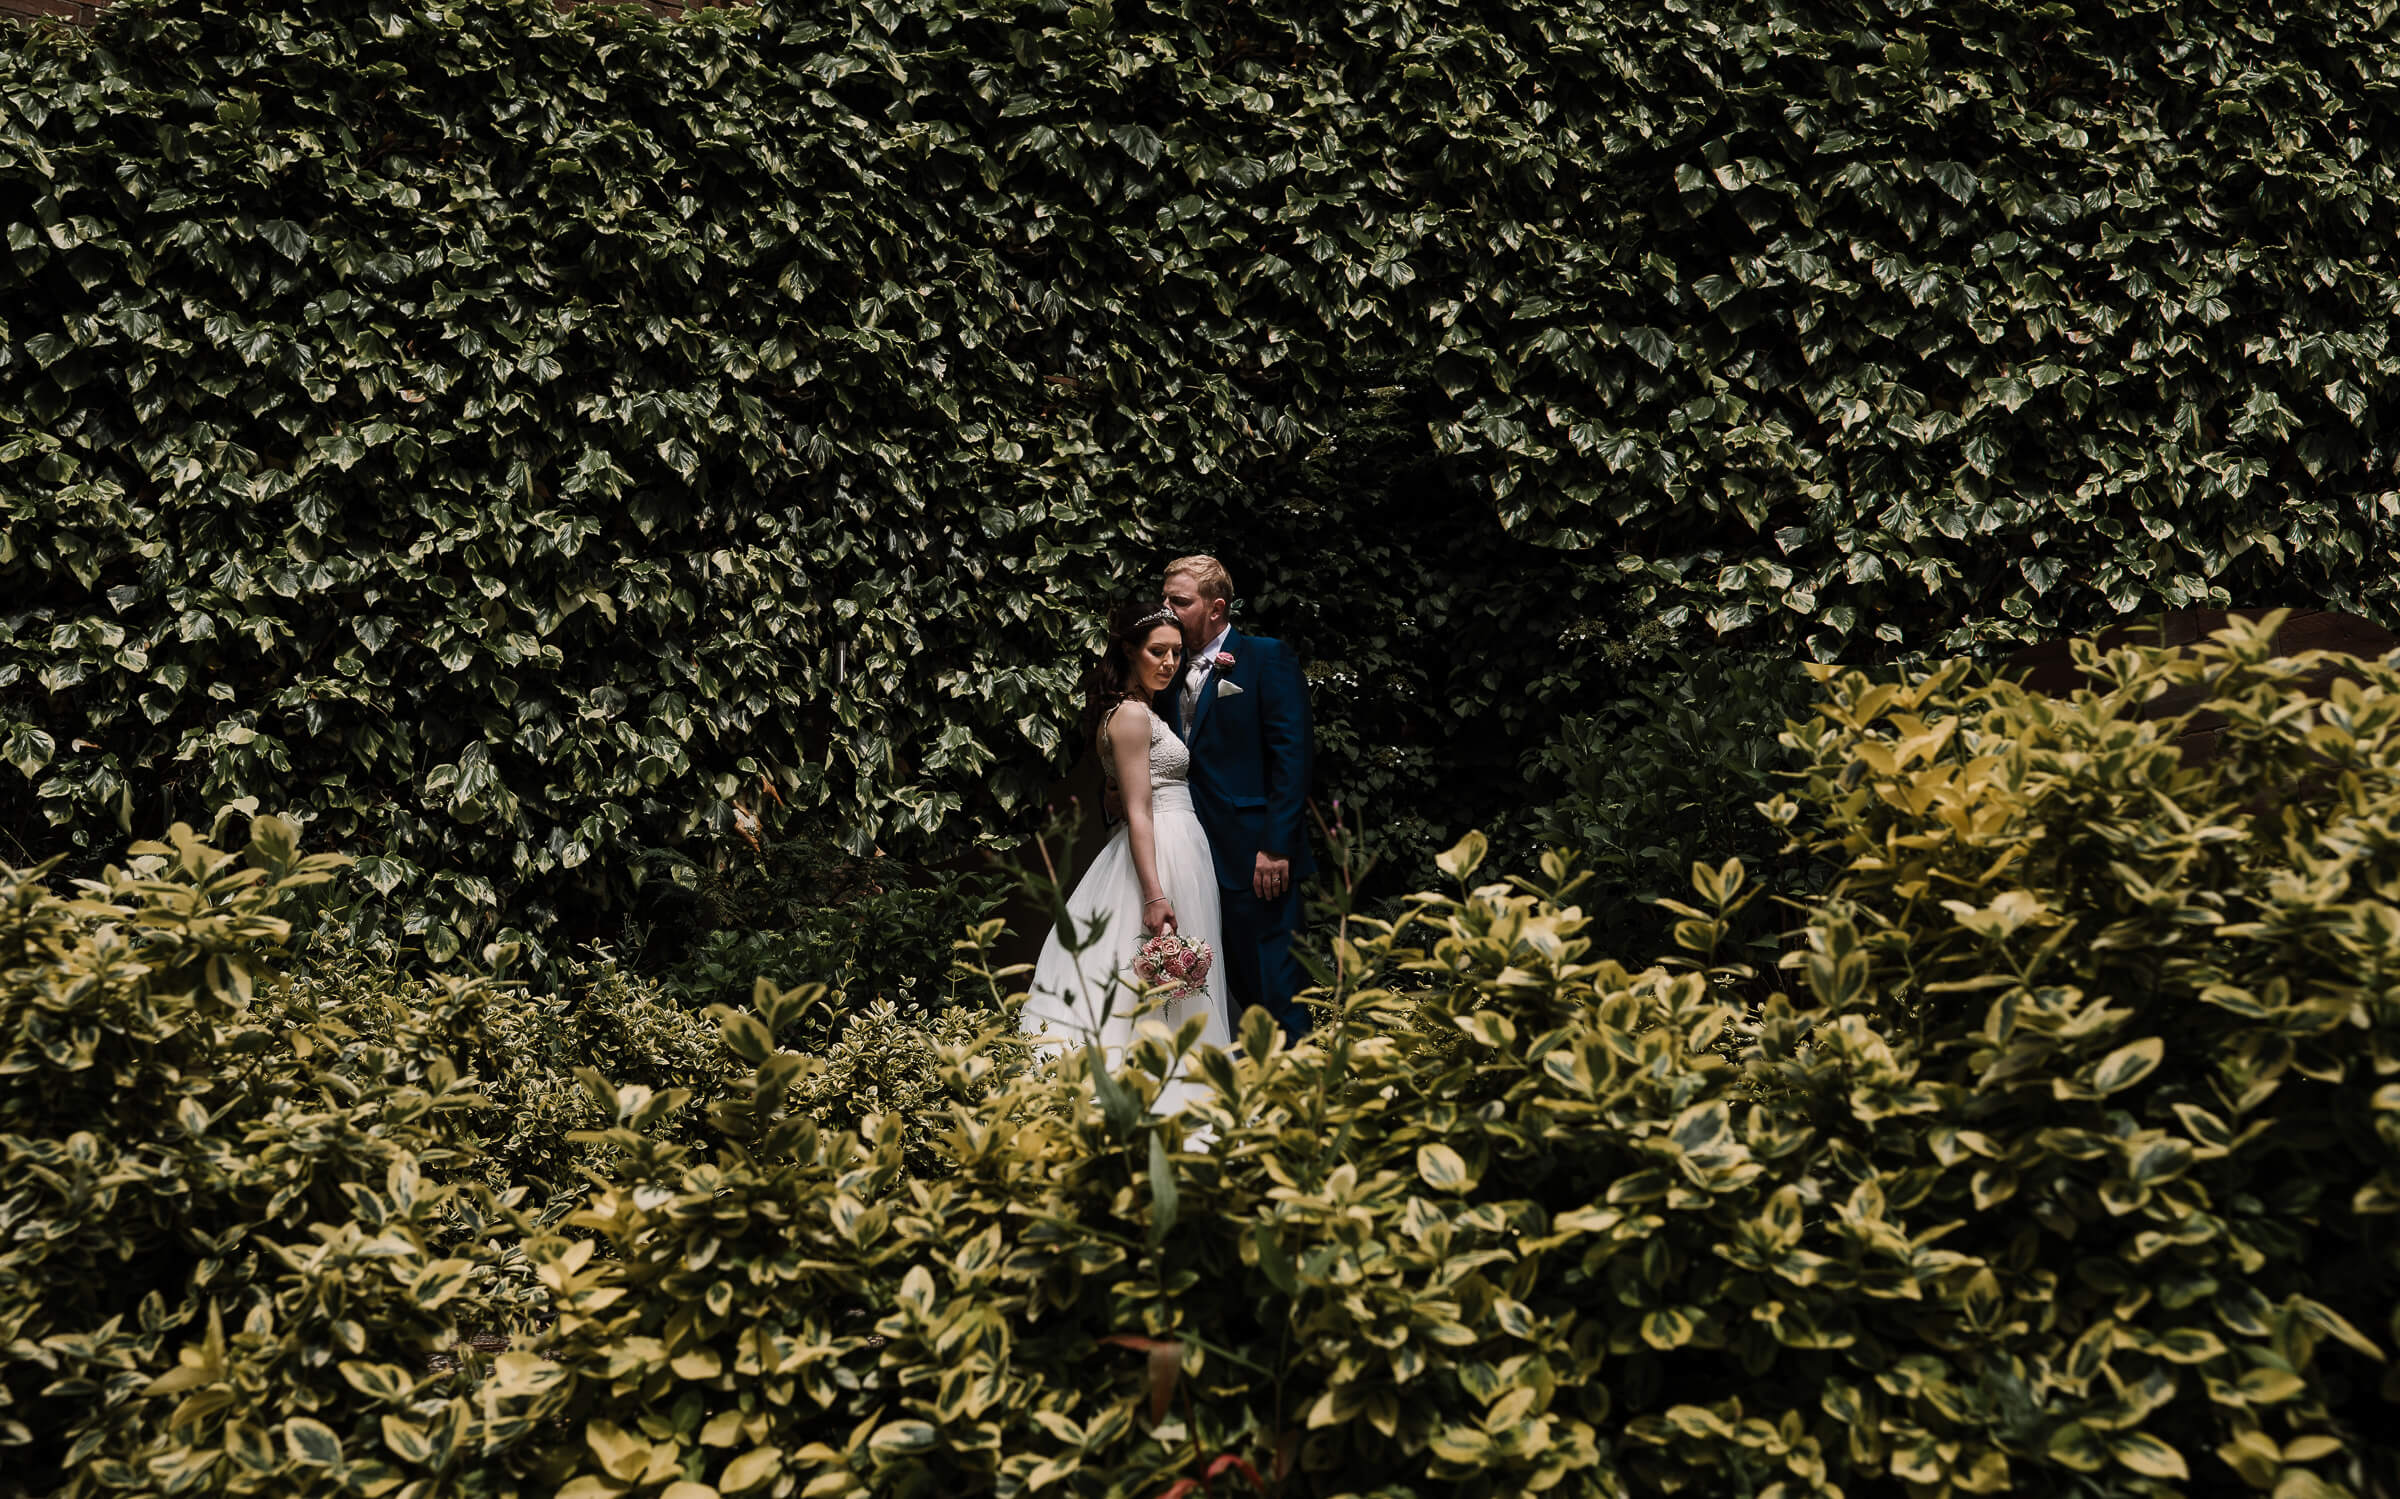 portrait of bride and groom surrounded by foliage